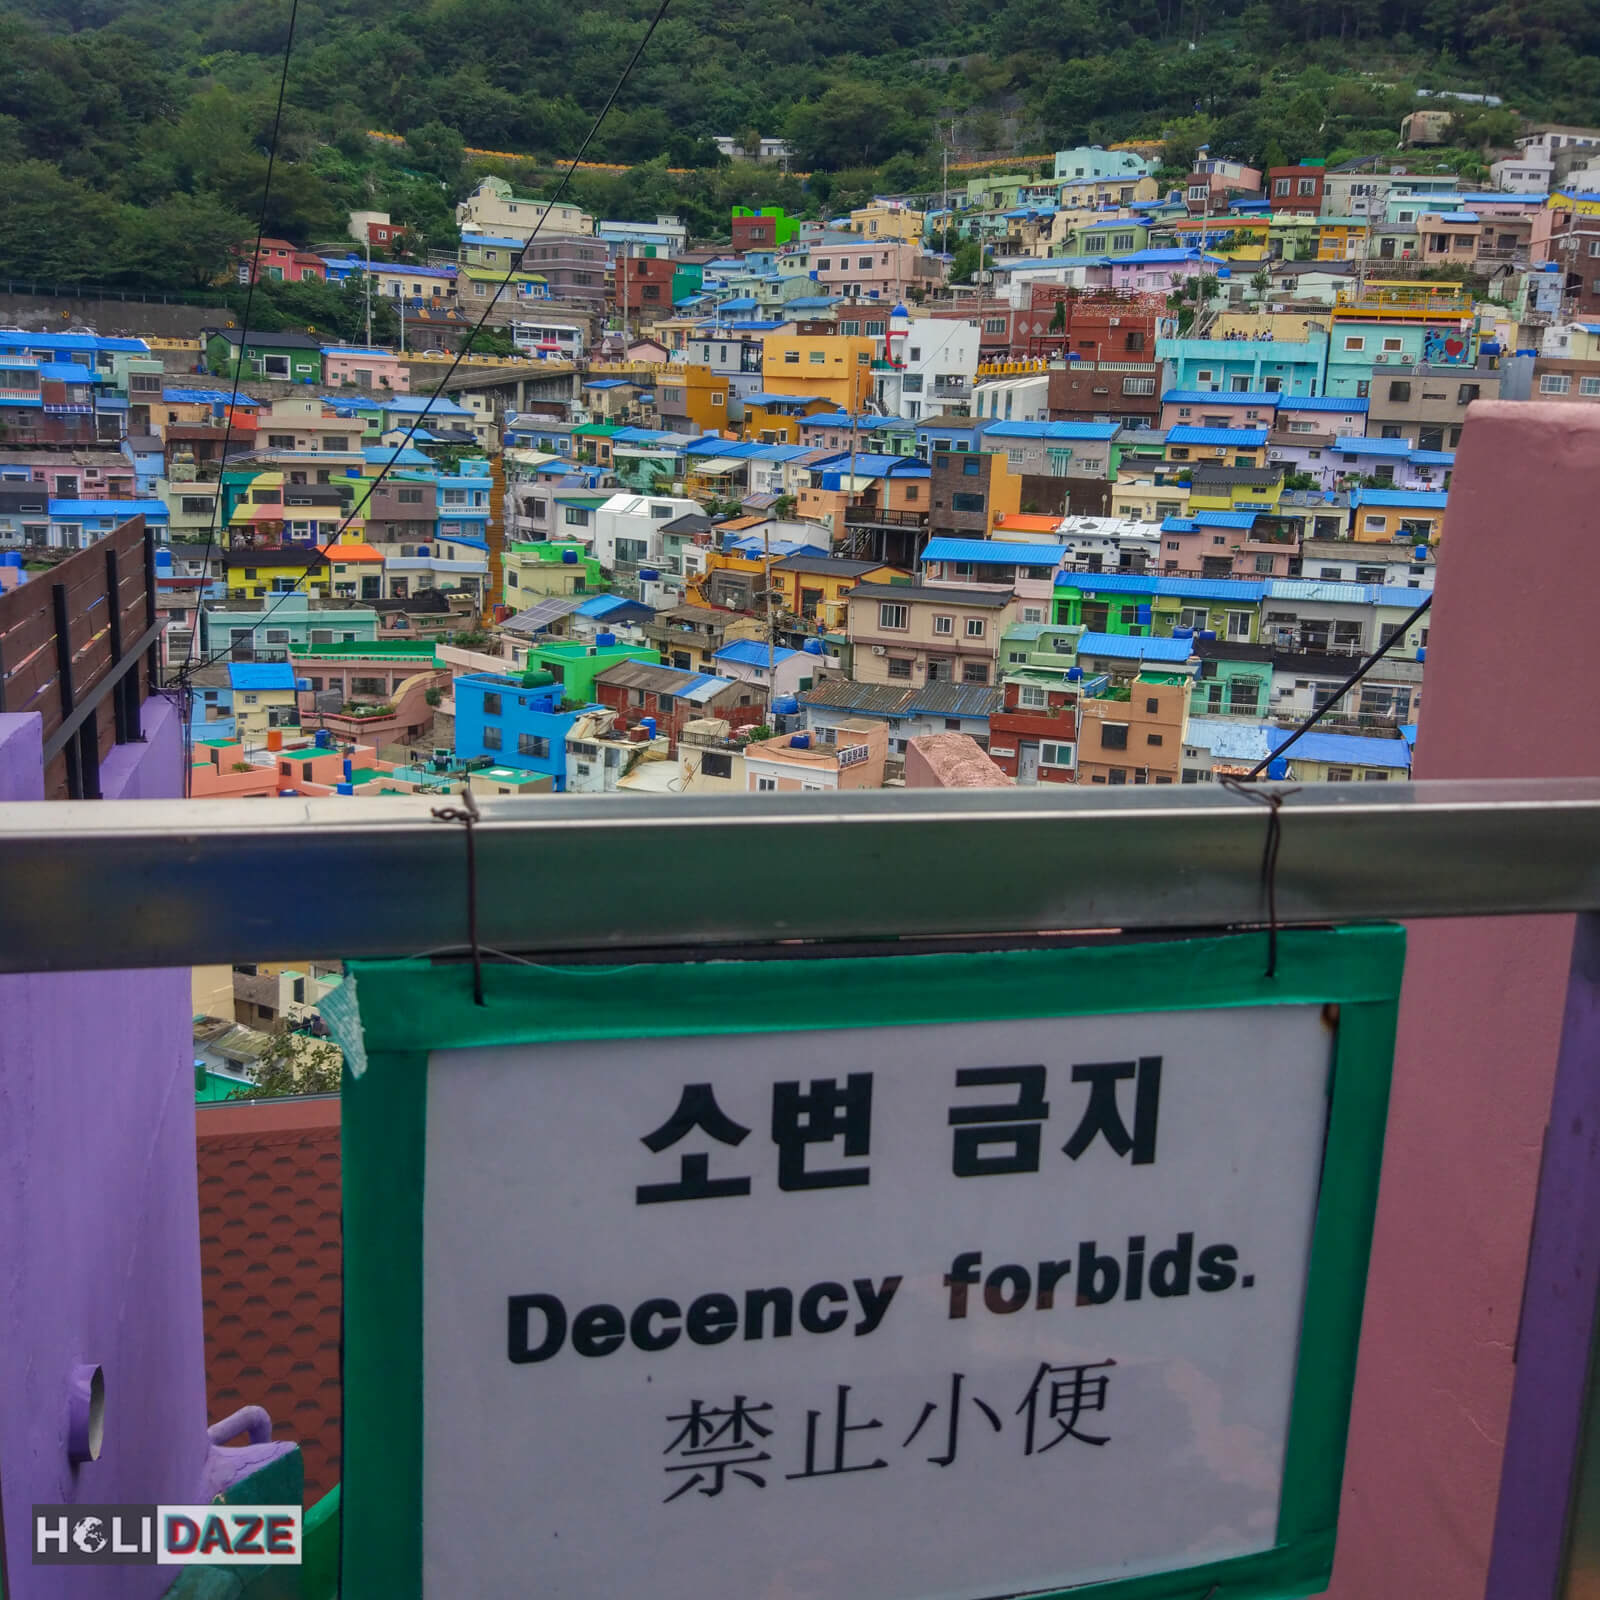 Decency forbids here in South Korea